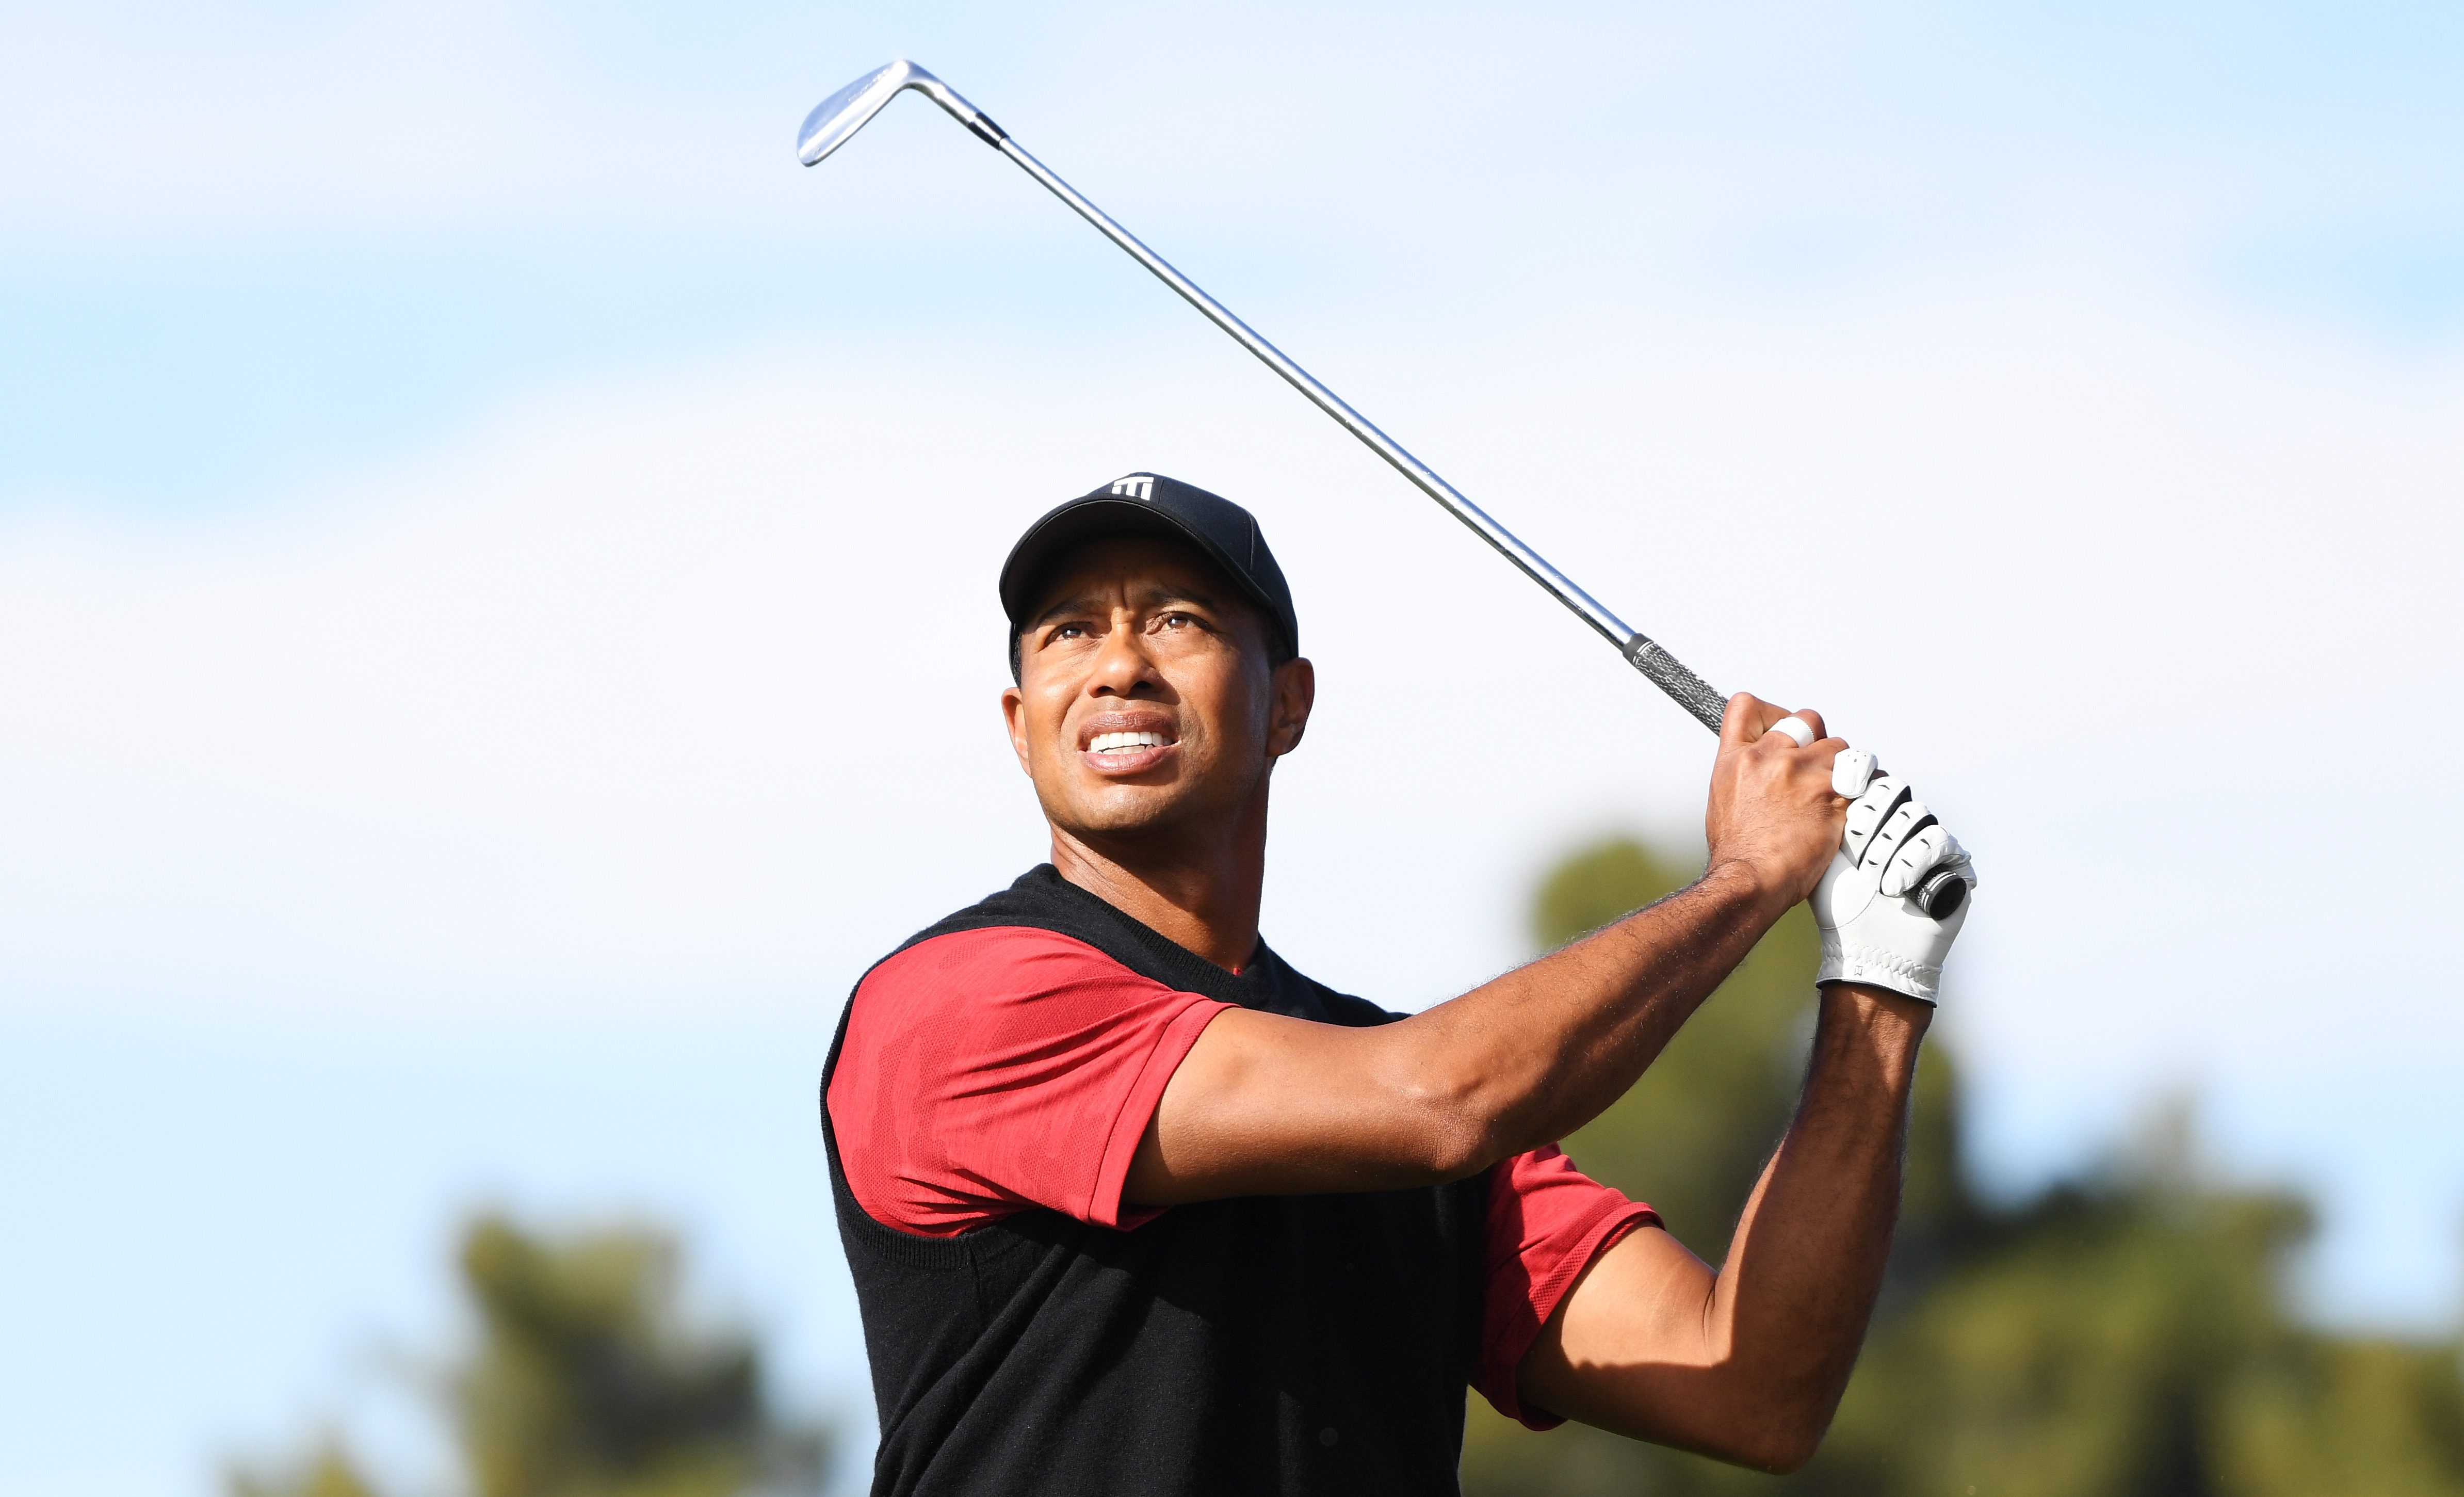 LAS VEGAS, NV - NOVEMBER 23: Tiger Woods plays his second shot on the second hole during The Match: Tiger vs Phil at Shadow Creek Golf Course on November 23, 2018 in Las Vegas, Nevada. (Photo by Harry How/Getty Images for The Match)